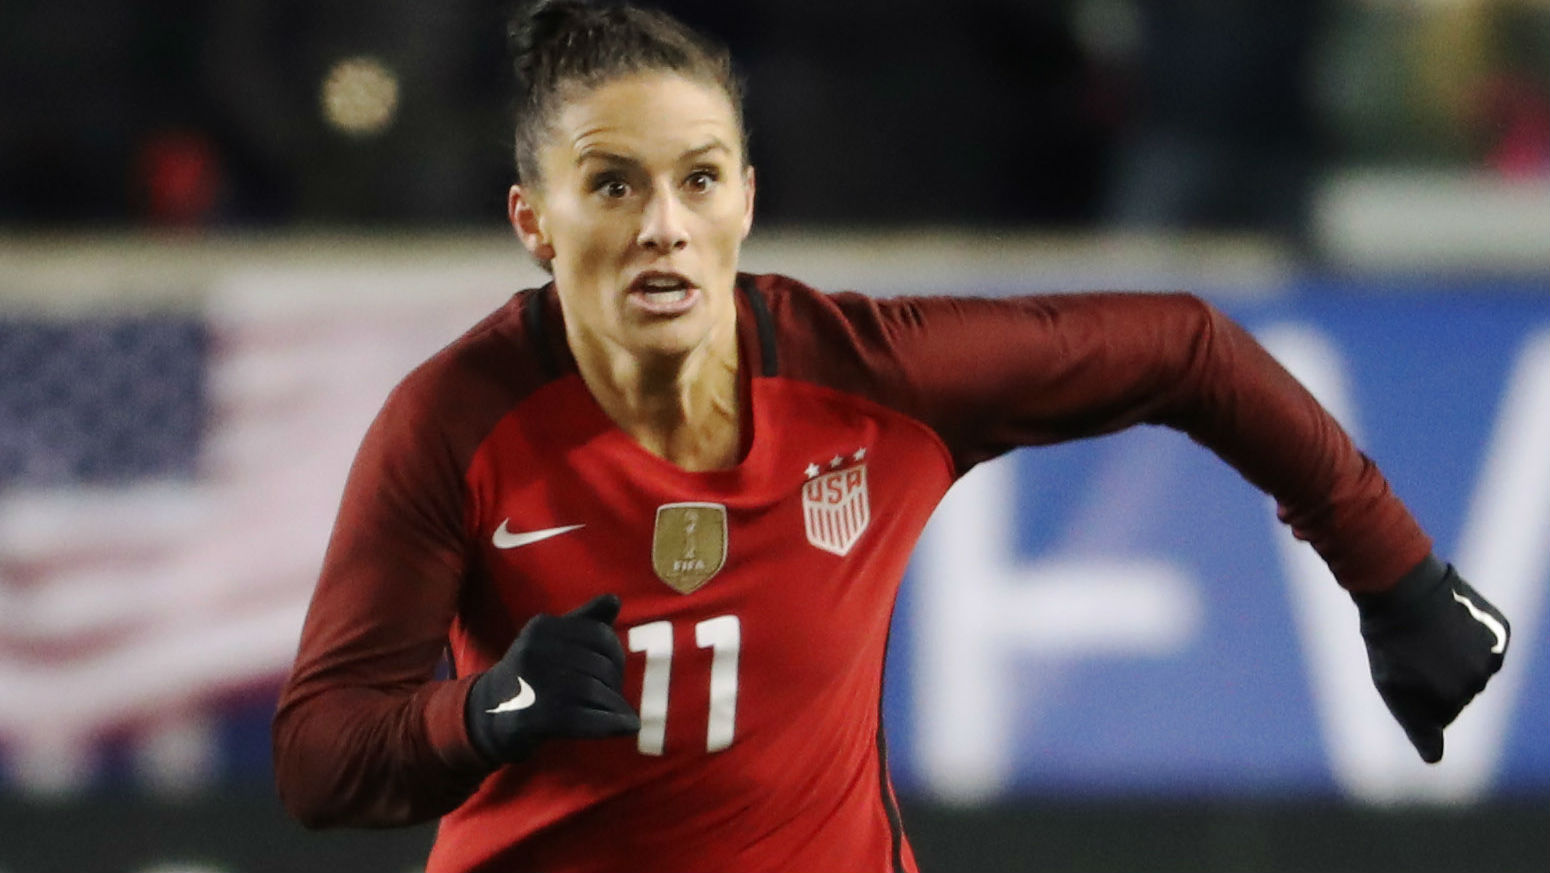 818b60de9 'I knew the door was somewhat cracked' - Krieger embraces unlikely second  chance with USWNT